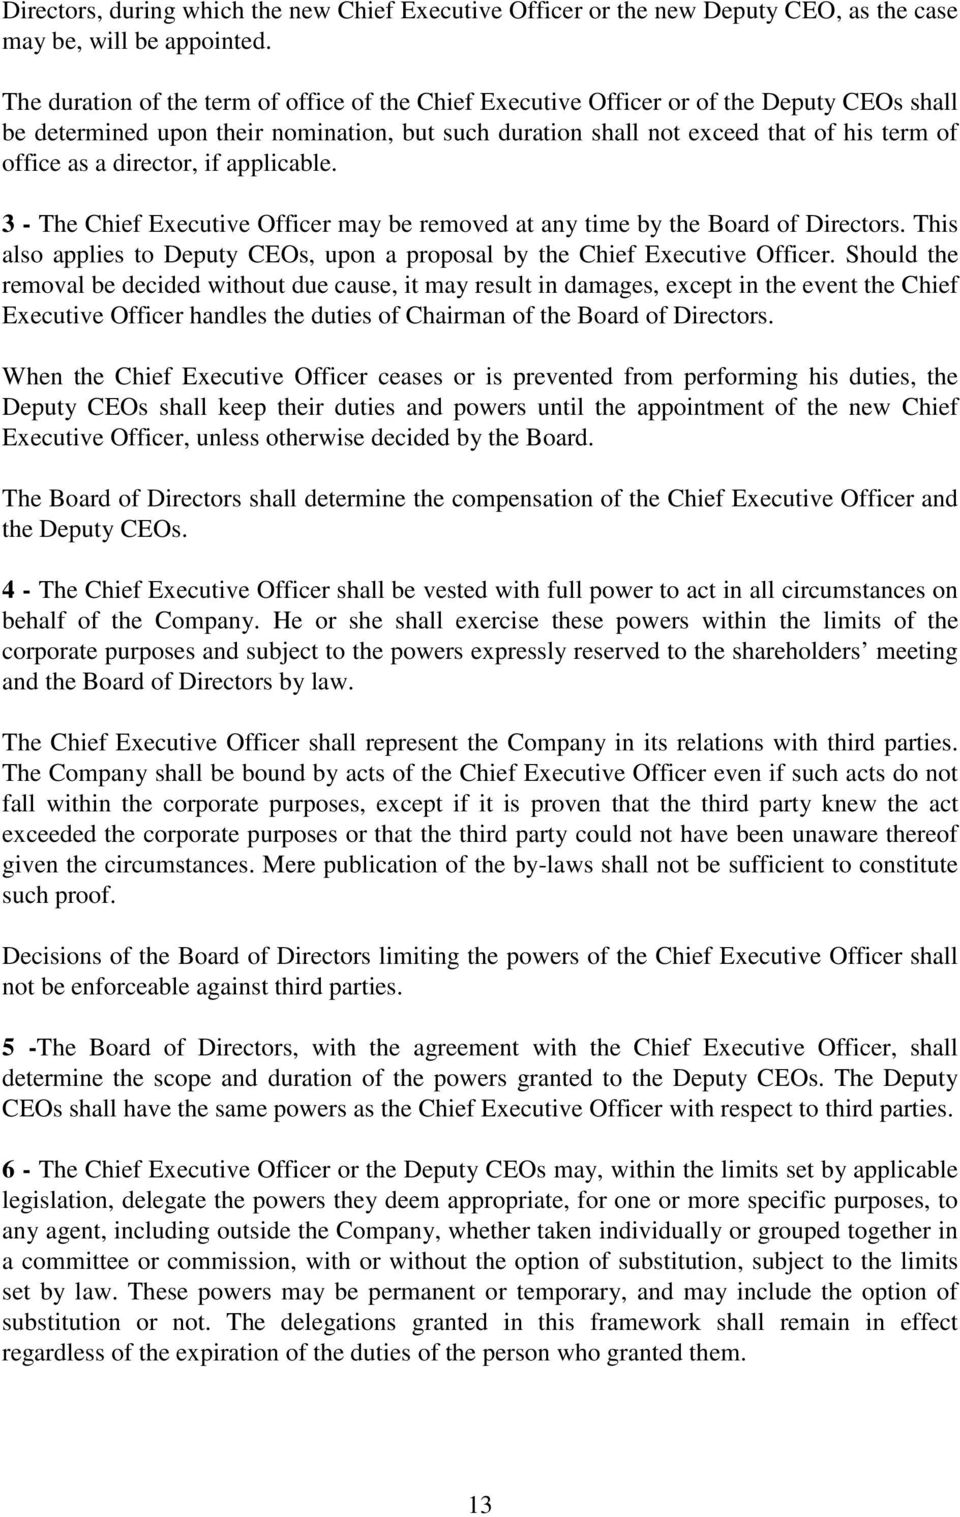 director, if applicable. 3 - The Chief Executive Officer may be removed at any time by the Board of Directors. This also applies to Deputy CEOs, upon a proposal by the Chief Executive Officer.